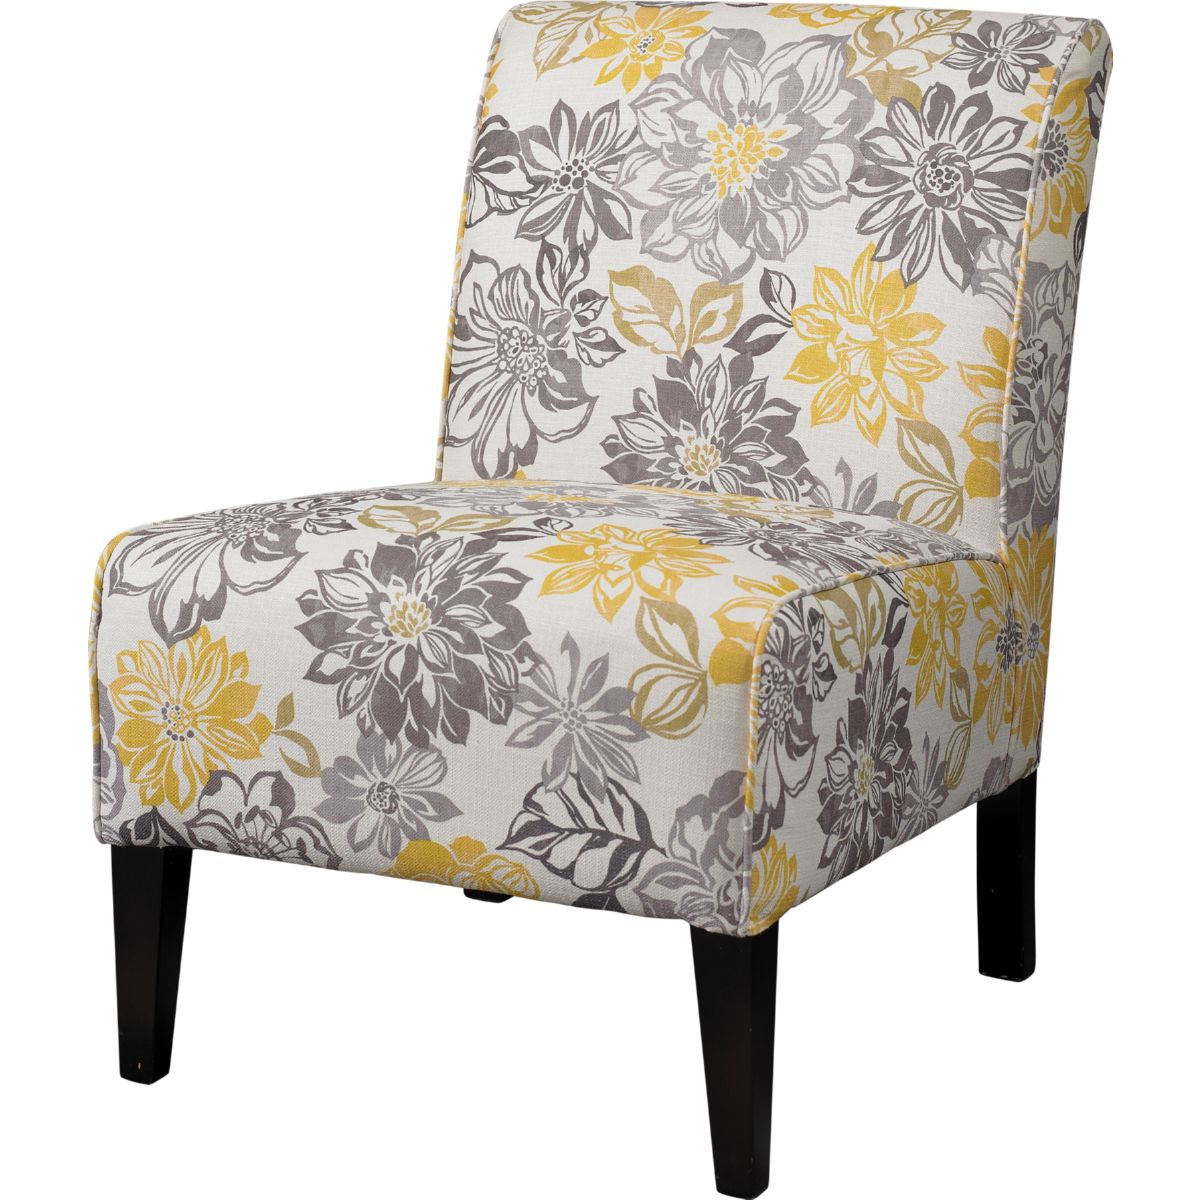 Yellow And Grey Accent Chair Lily Bridey Accent Chair With Grey And Yellow Floral Pattern